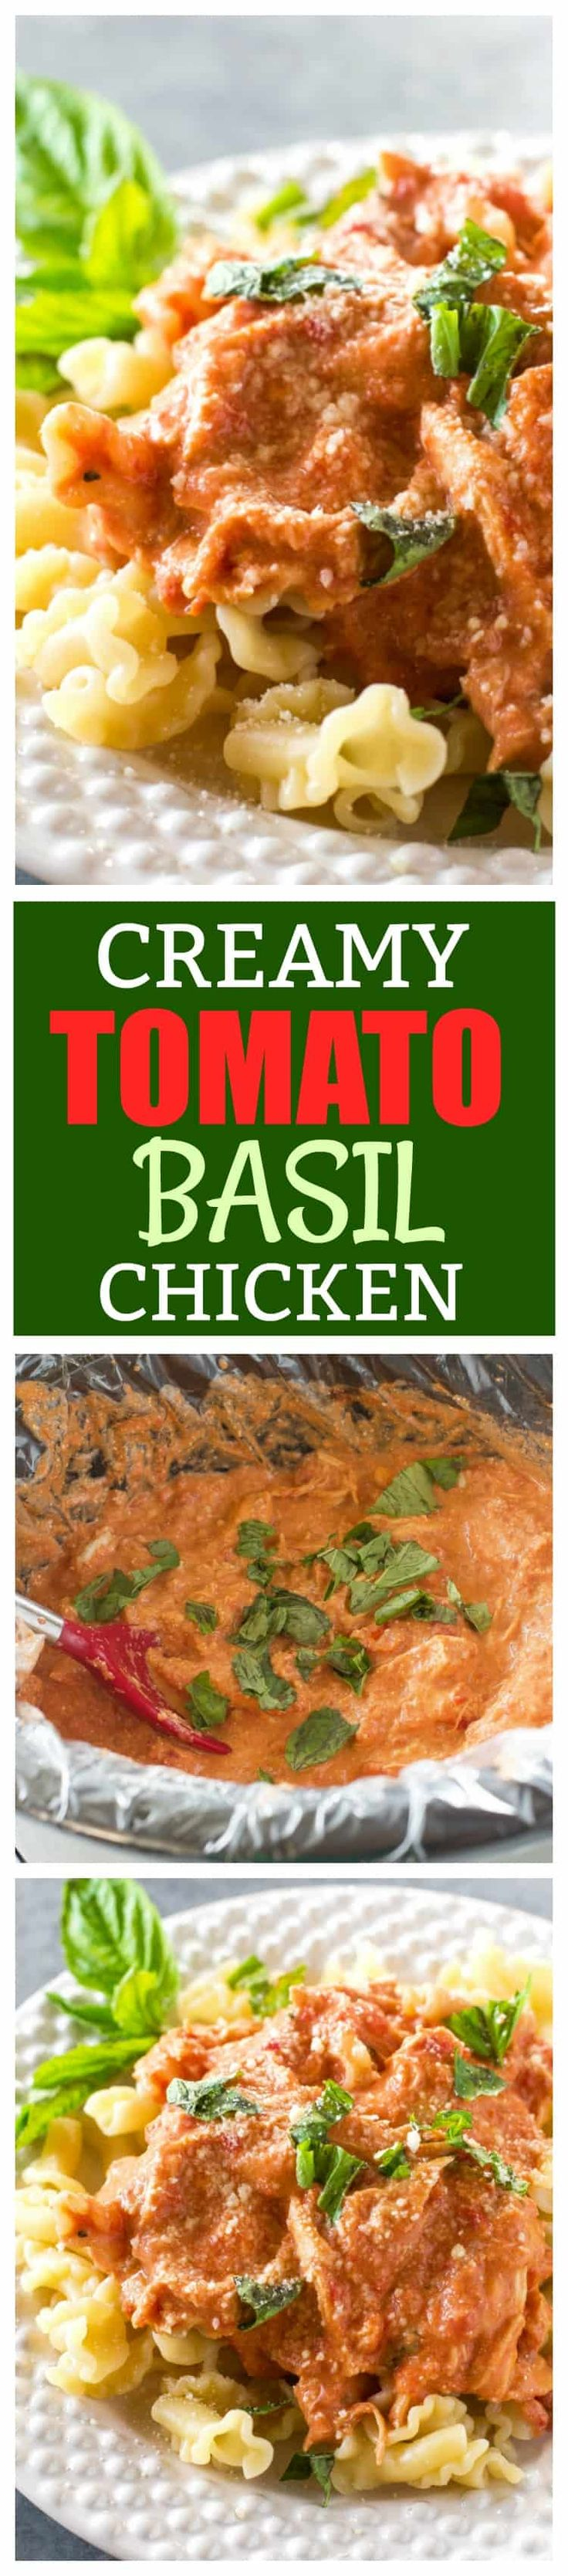 Creamy Tomato Basil Chicken - made in the slow cooker and served over pasta for an easy weeknight dinner. @Reynoldswrap the-girl-who-ate-everything.com